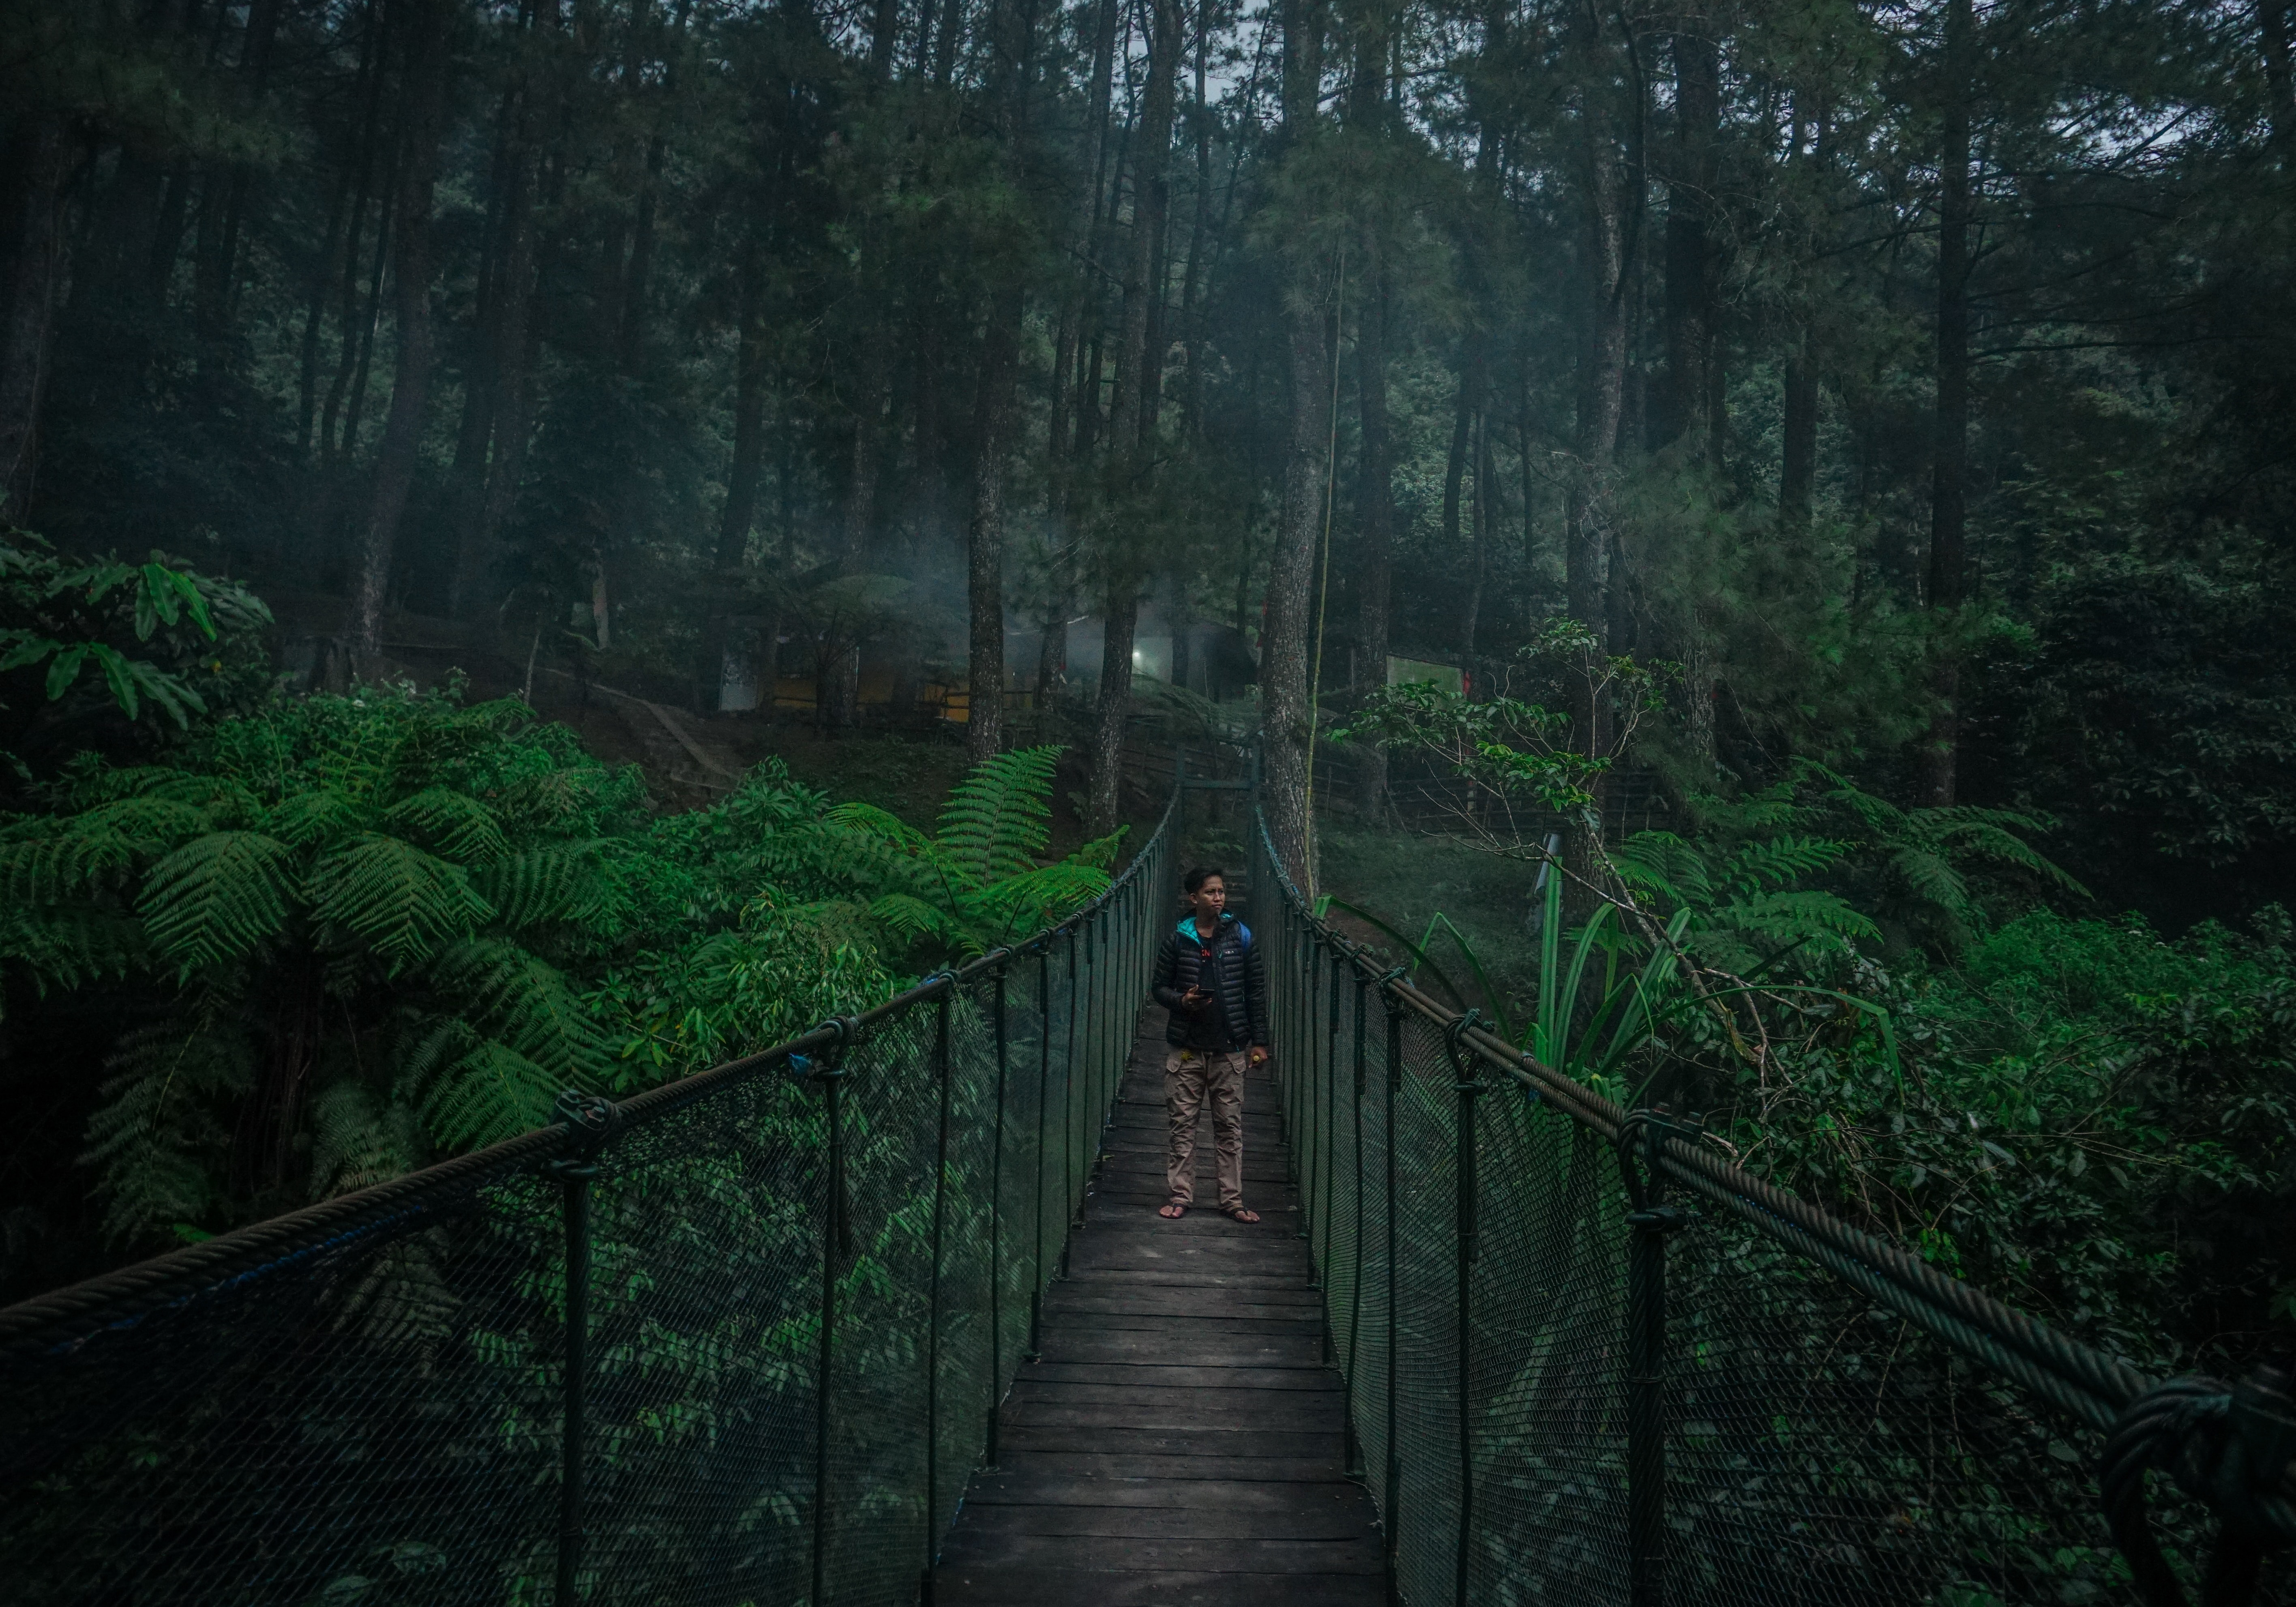 person standing on hanging bridge surrounded by trees